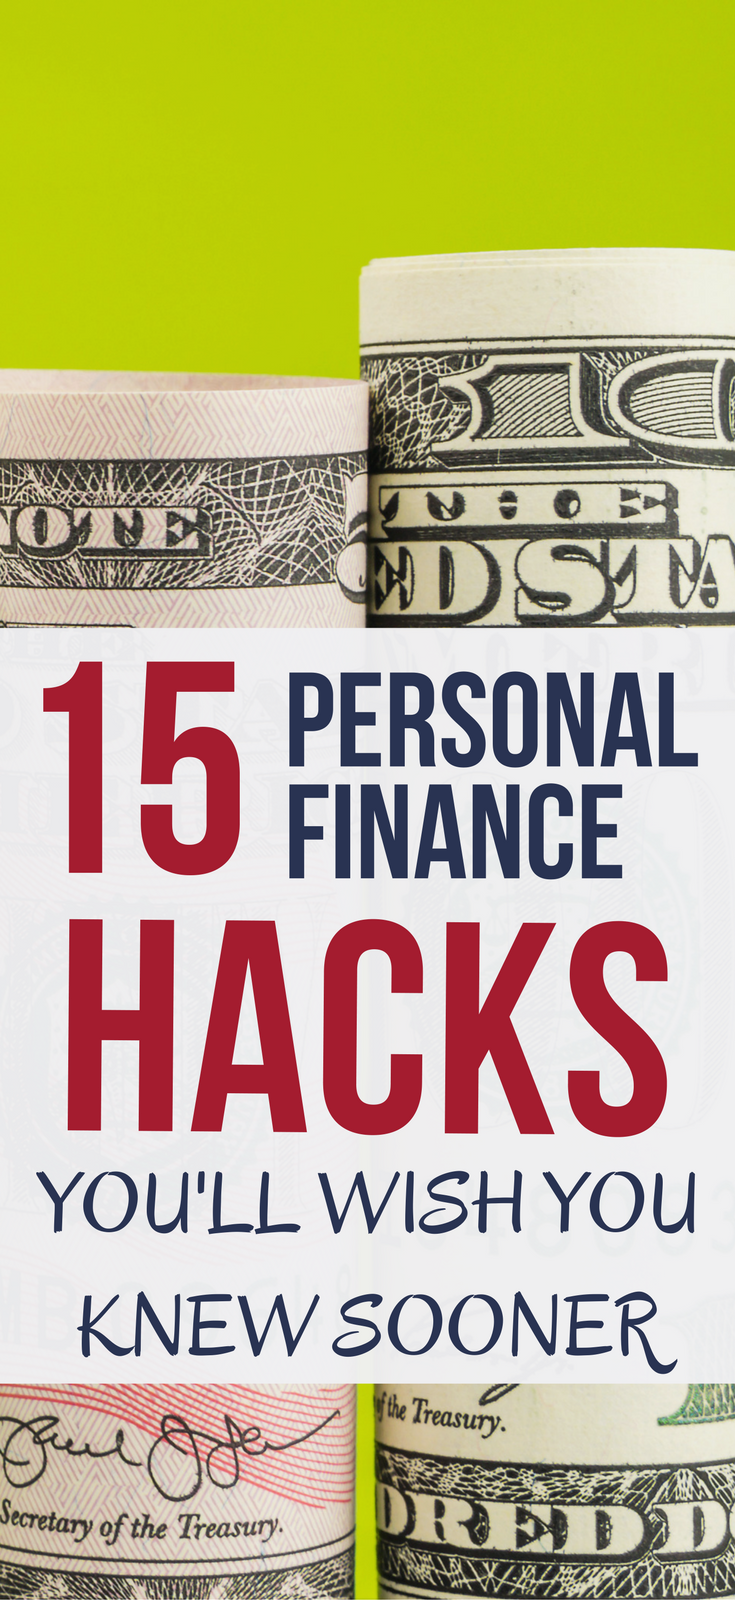 15 Personal Finance Hacks You'll Wish You Knew Sooner CHECK OUT these 15 money management hacks. If you like small actions that lead to big results, you'll love this. personal finance hacks | money management tips | life hacks | money hacks